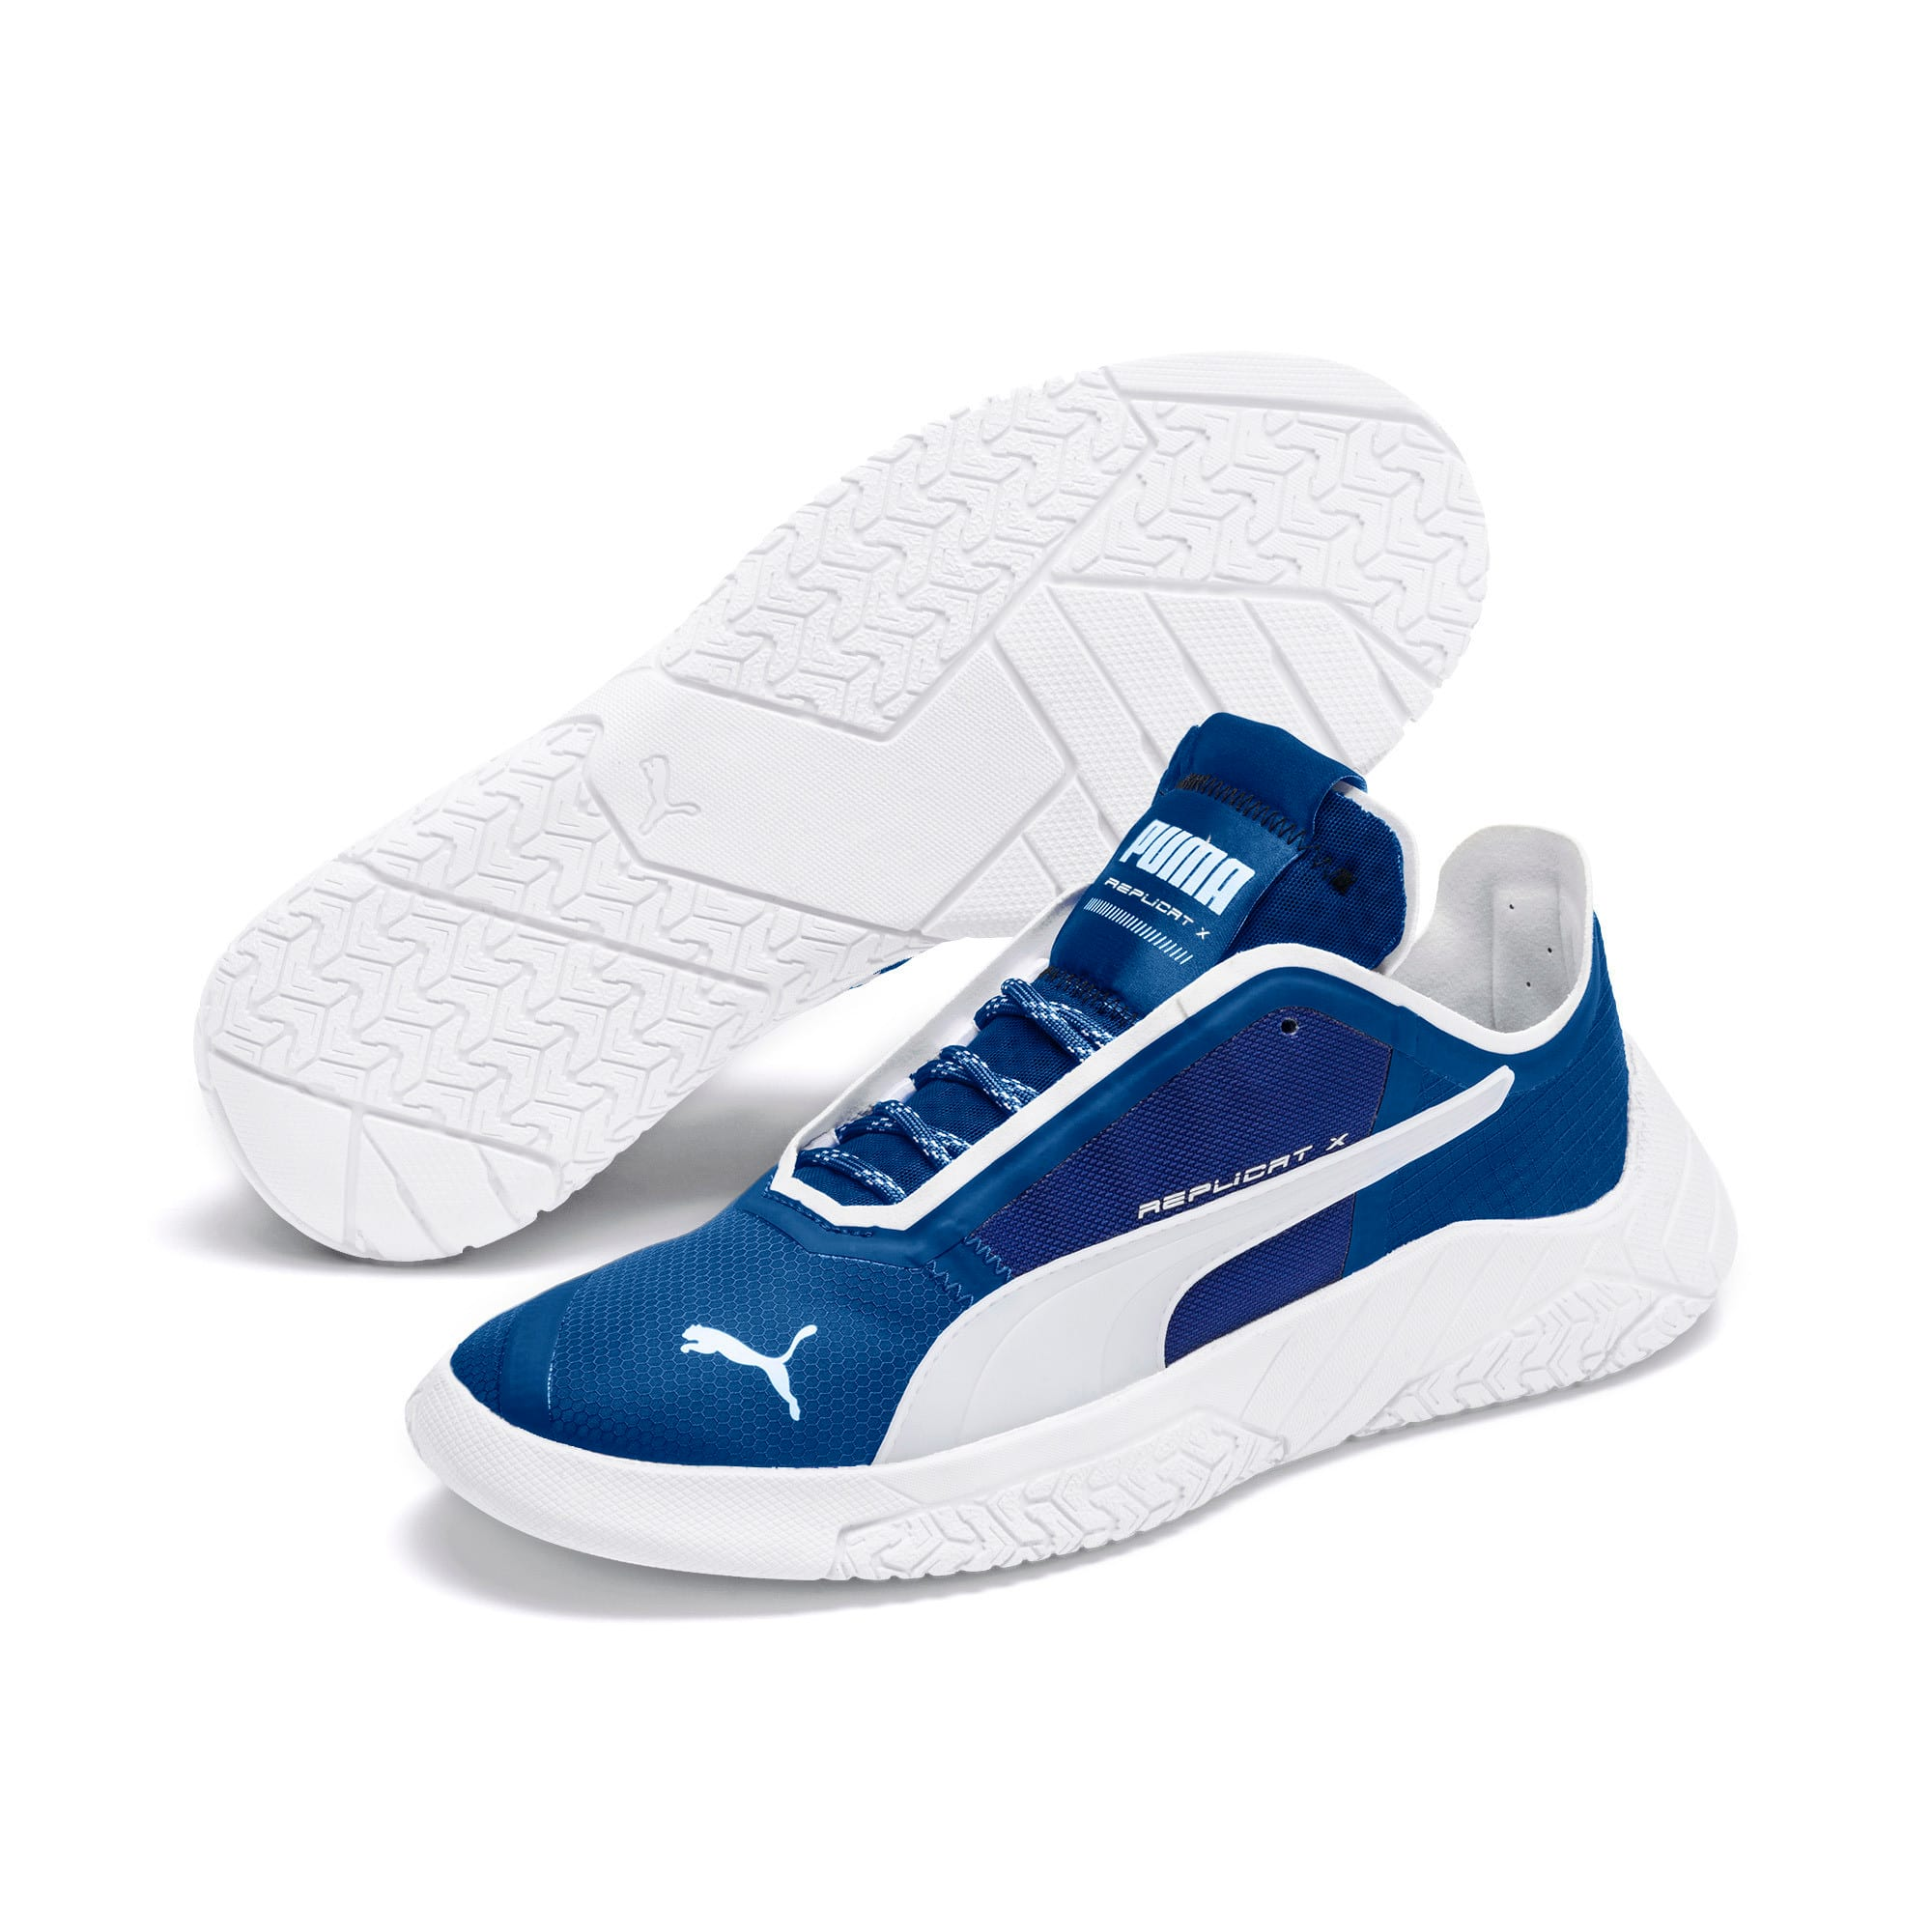 Thumbnail 2 of Replicat-X Circuit Trainers, Galaxy Blue-Puma White, medium